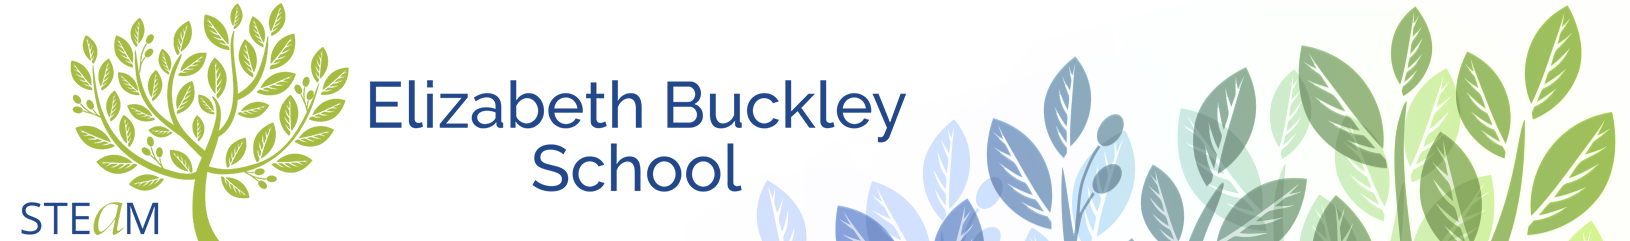 Elizabeth Buckley School